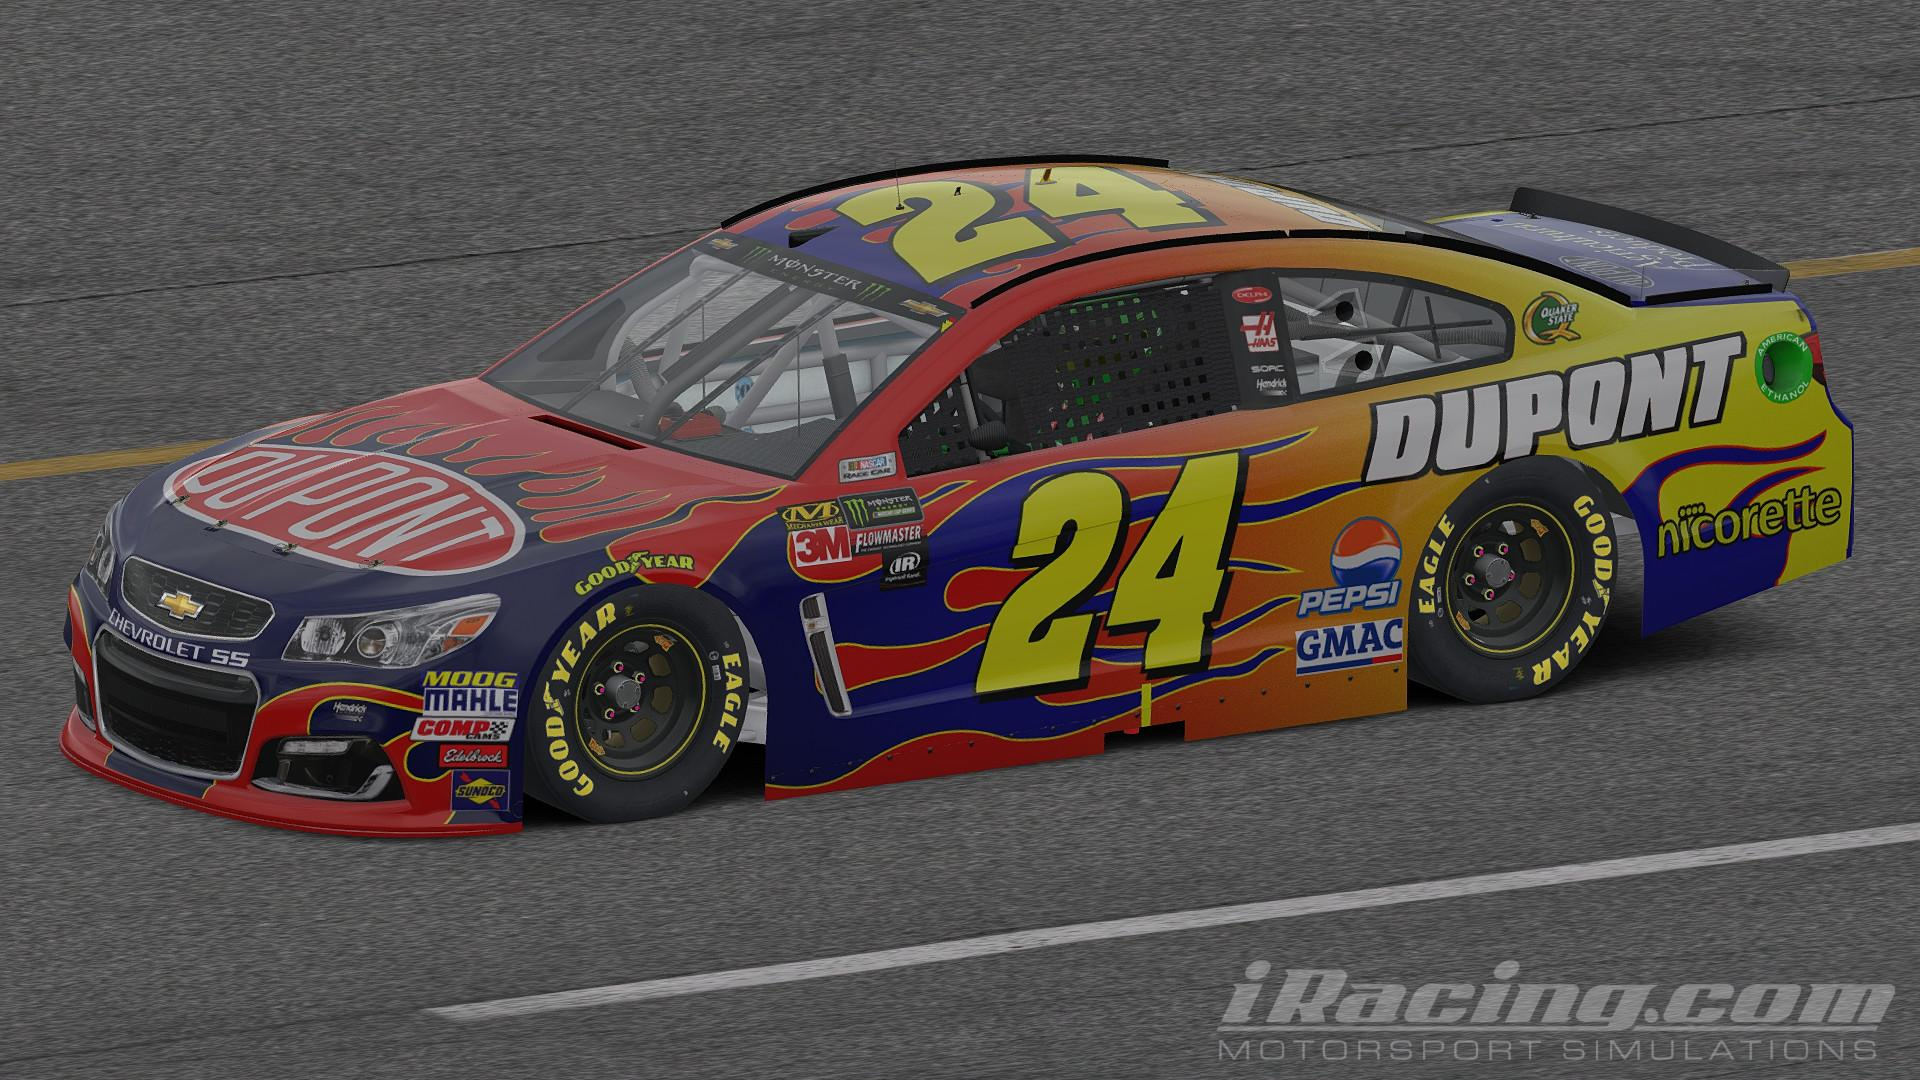 Preview of Dupont Automotive Finishes Fade Fictional by Scott Pierchorowicz